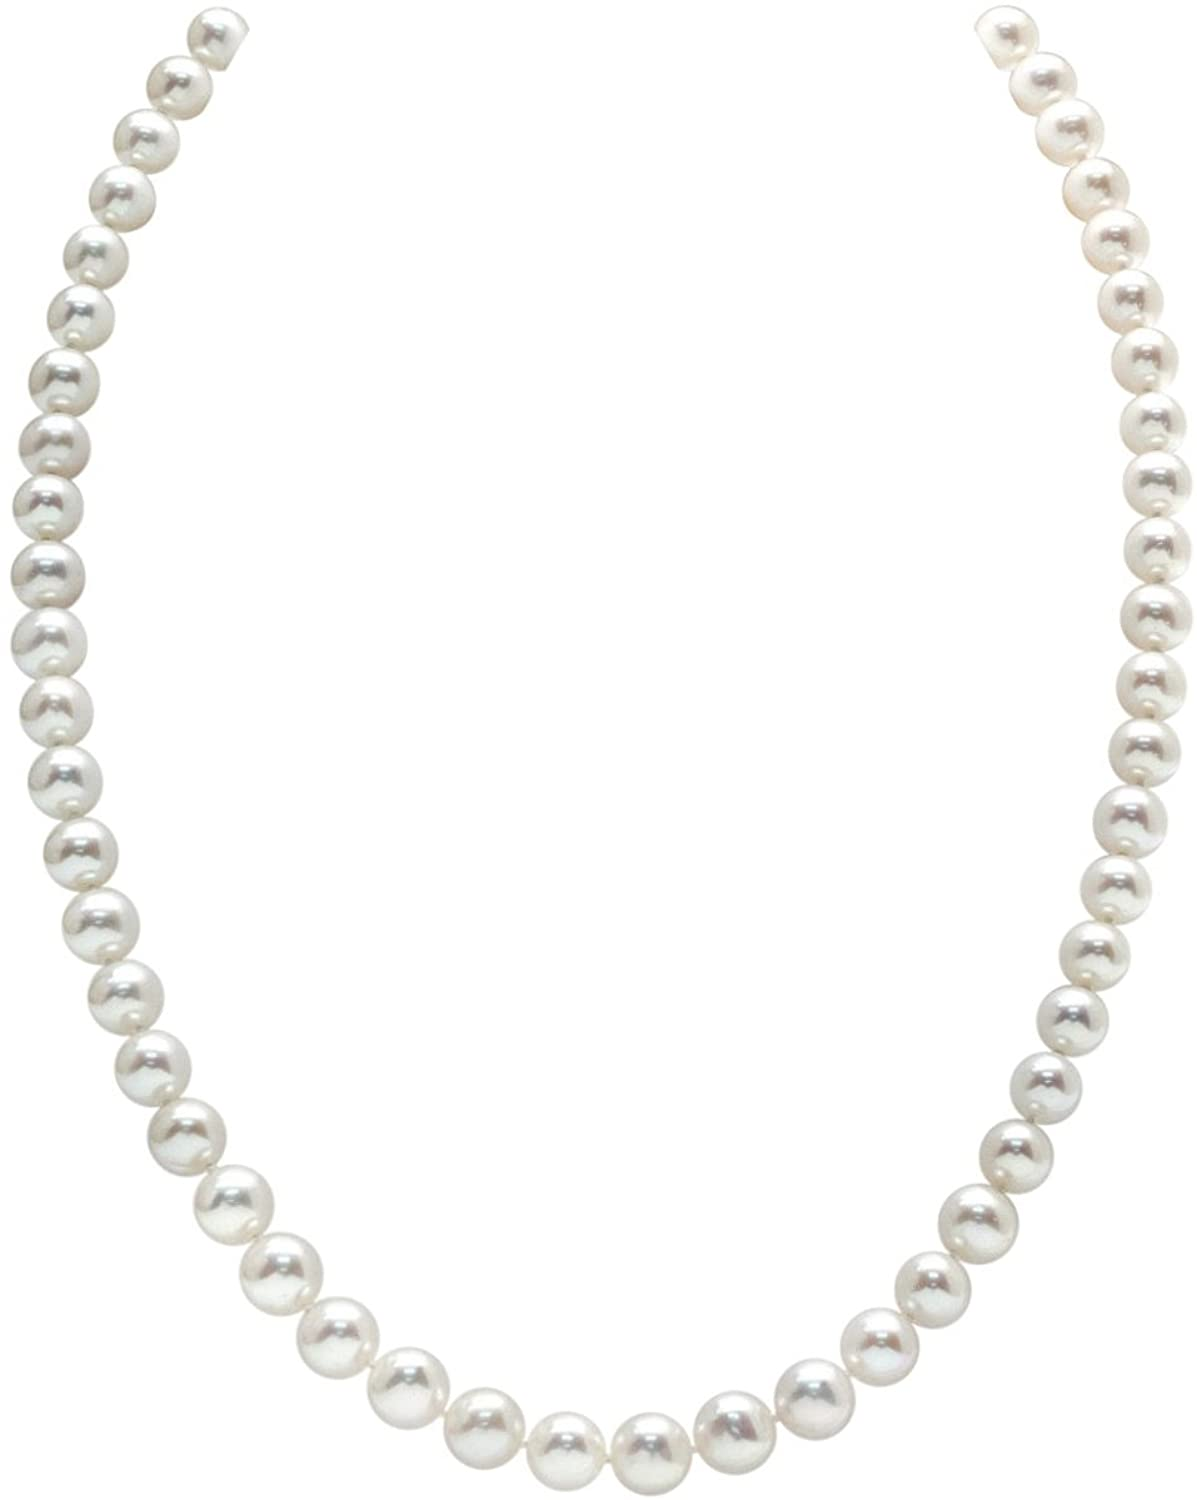 THE PEARL SOURCE 14K Gold 6.5-7.0mm Quality Round White AAAA Fre Ranking TOP20 Excellent